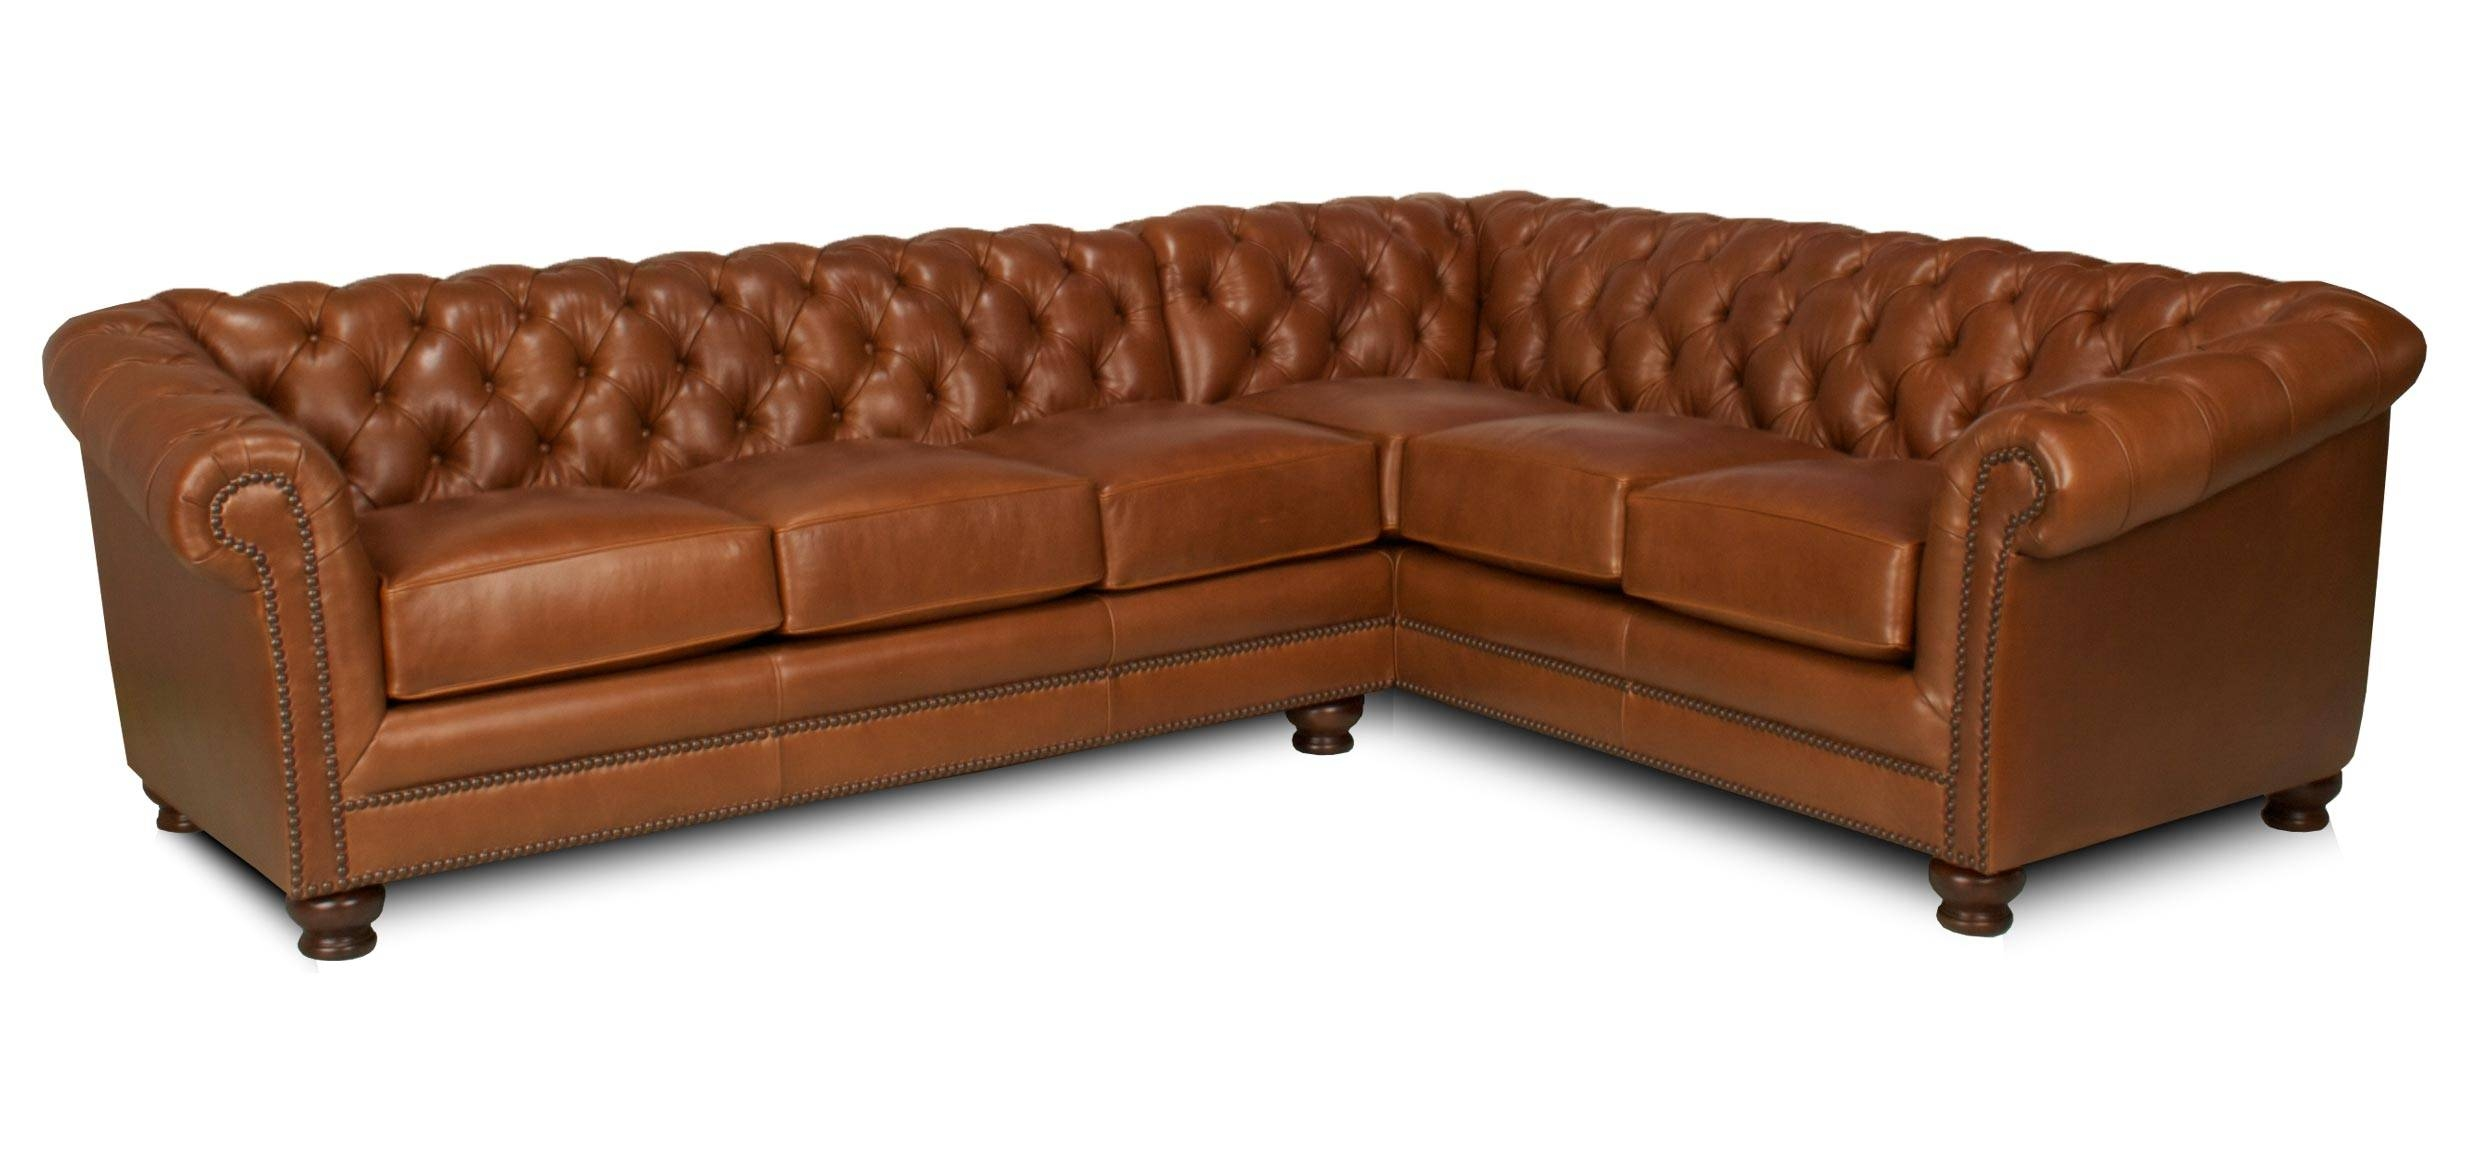 Storage Ordinary Small Leather Chesterfield Sofa Part 6 Ordinary in Small Chesterfield Sofas (Image 24 of 30)